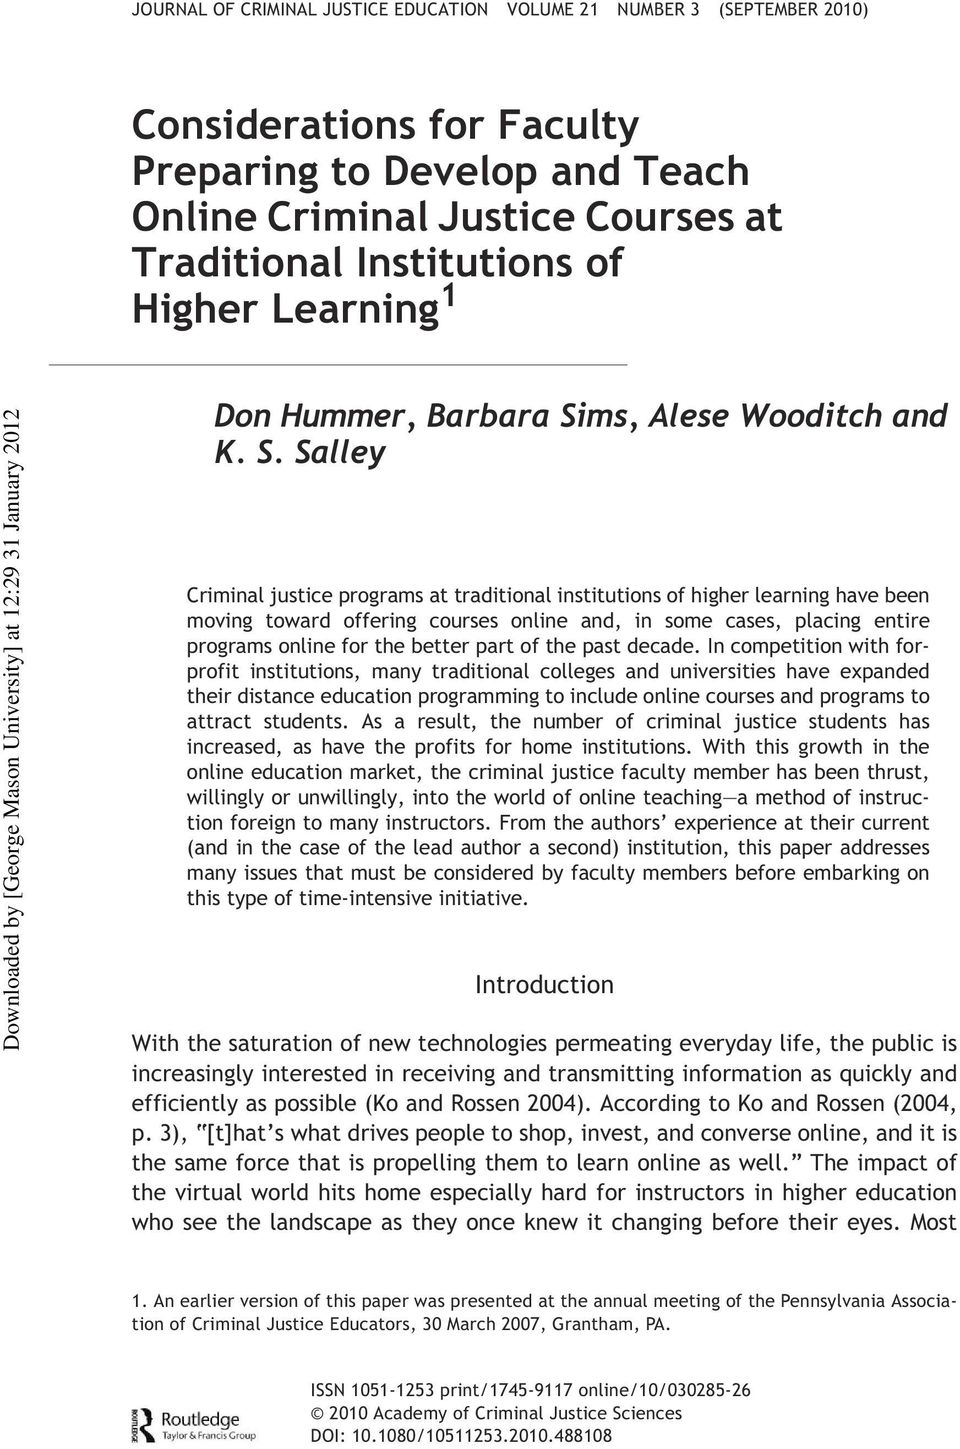 edu DonHummer and & of Article Francis Criminal (print)/1745-9117 Justice Education (online) Don Hummer, Barbara Si